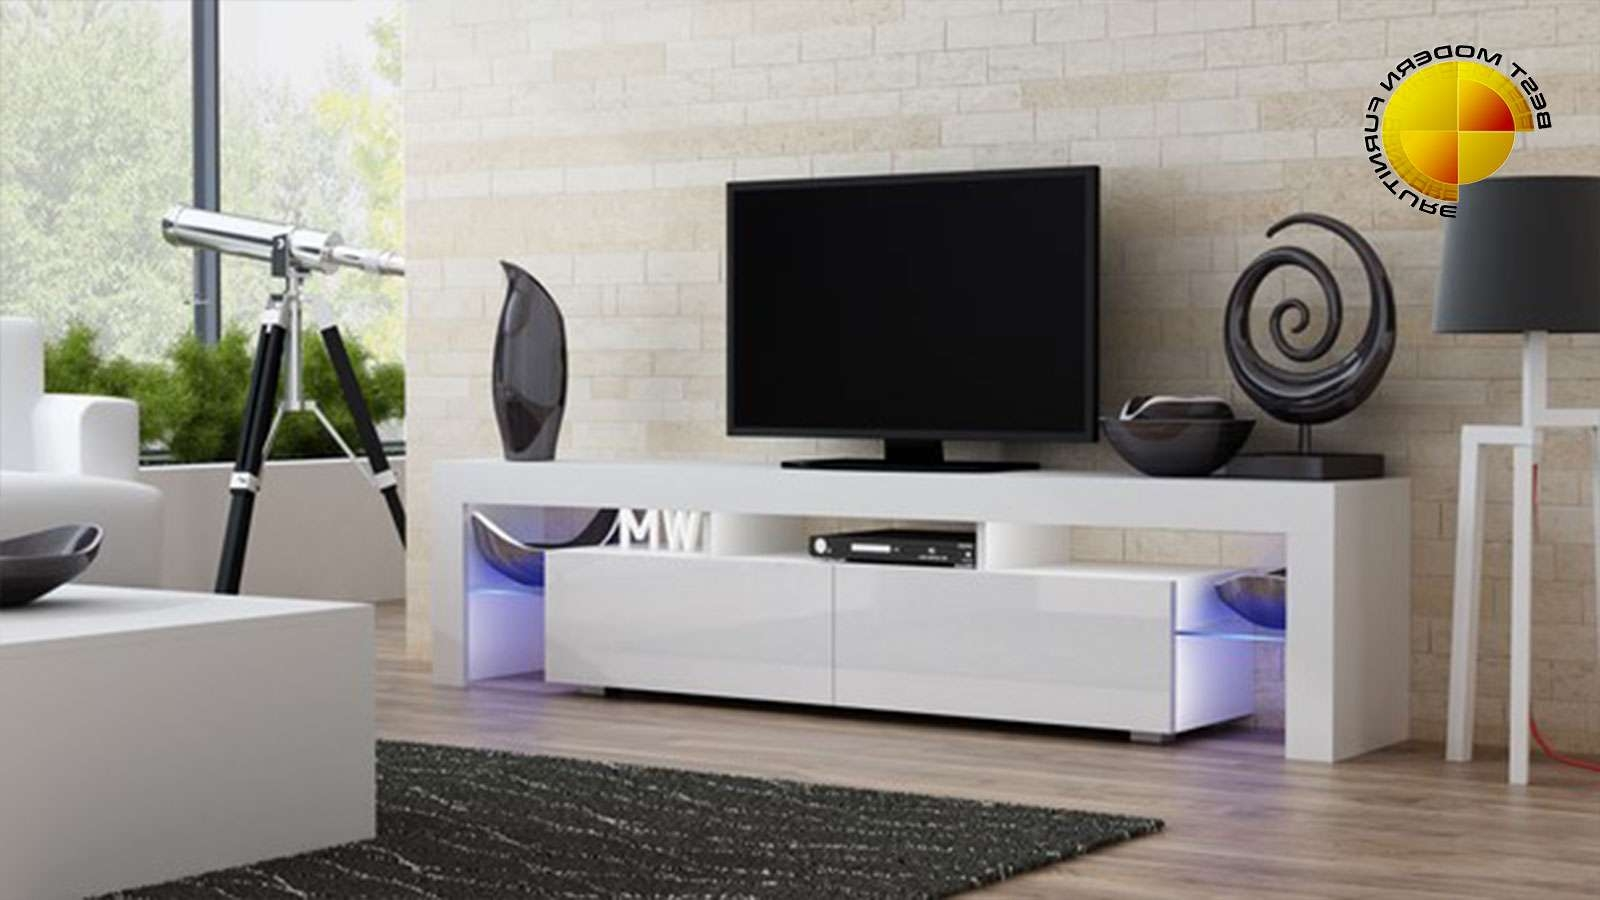 Black And White Tv Stand Modern 130cm High Gloss Cabinet Free Rgb With Regard To White High Gloss Tv Stands Unit Cabinet (View 9 of 15)